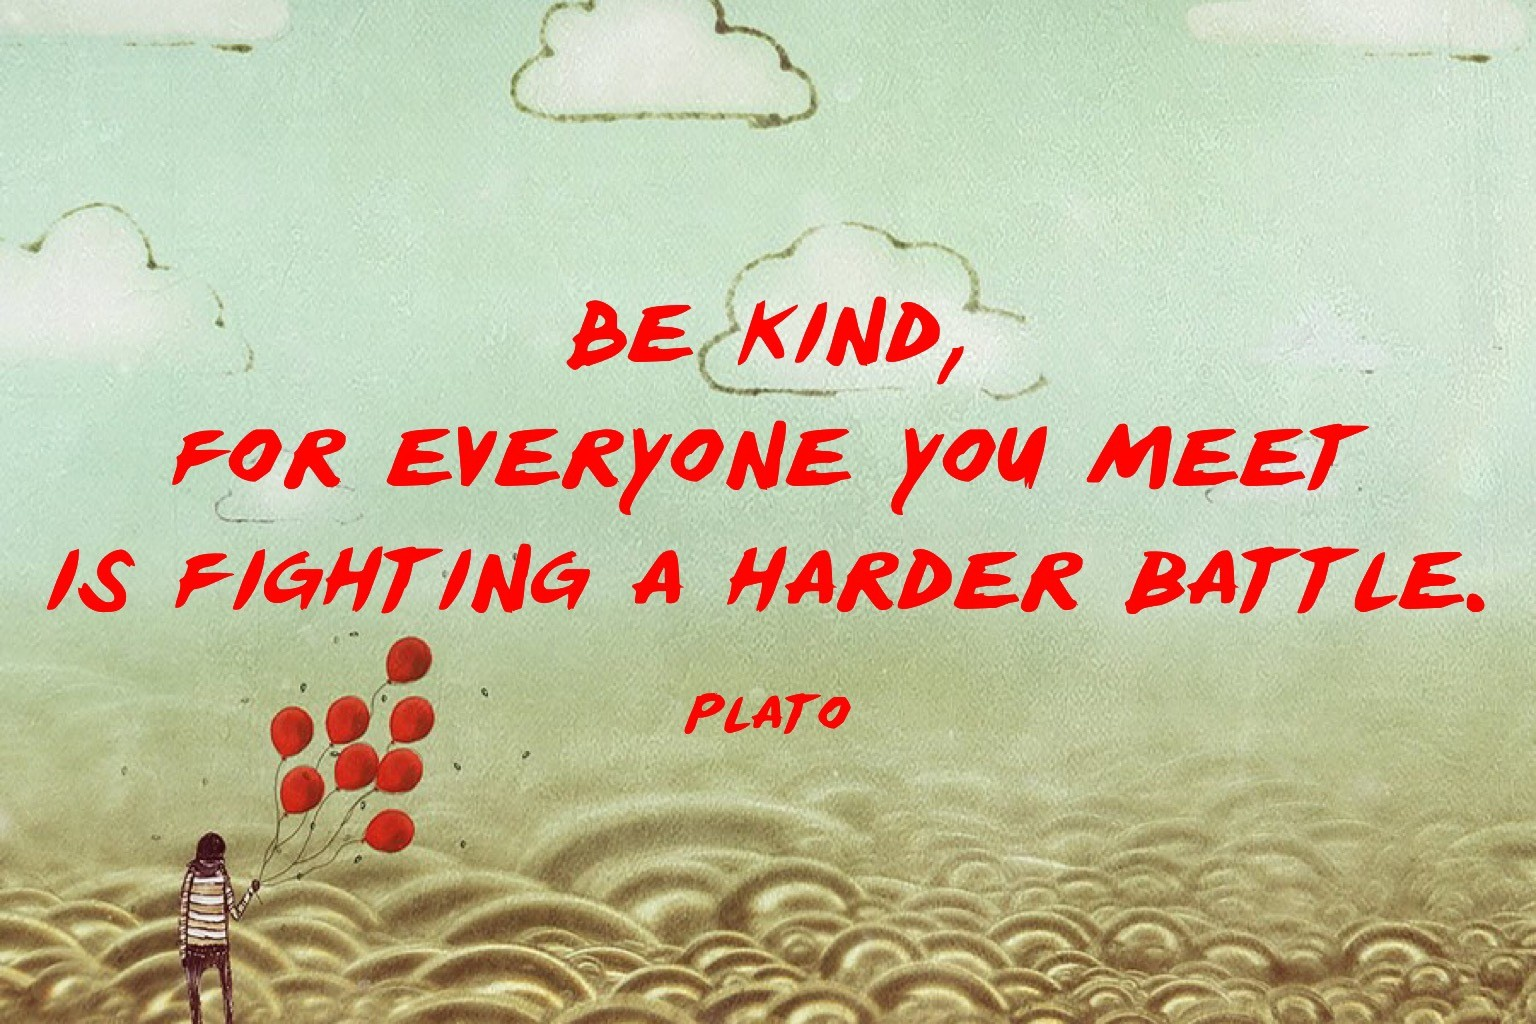 Be Kind For Everyone You Meet - People Development Magazine